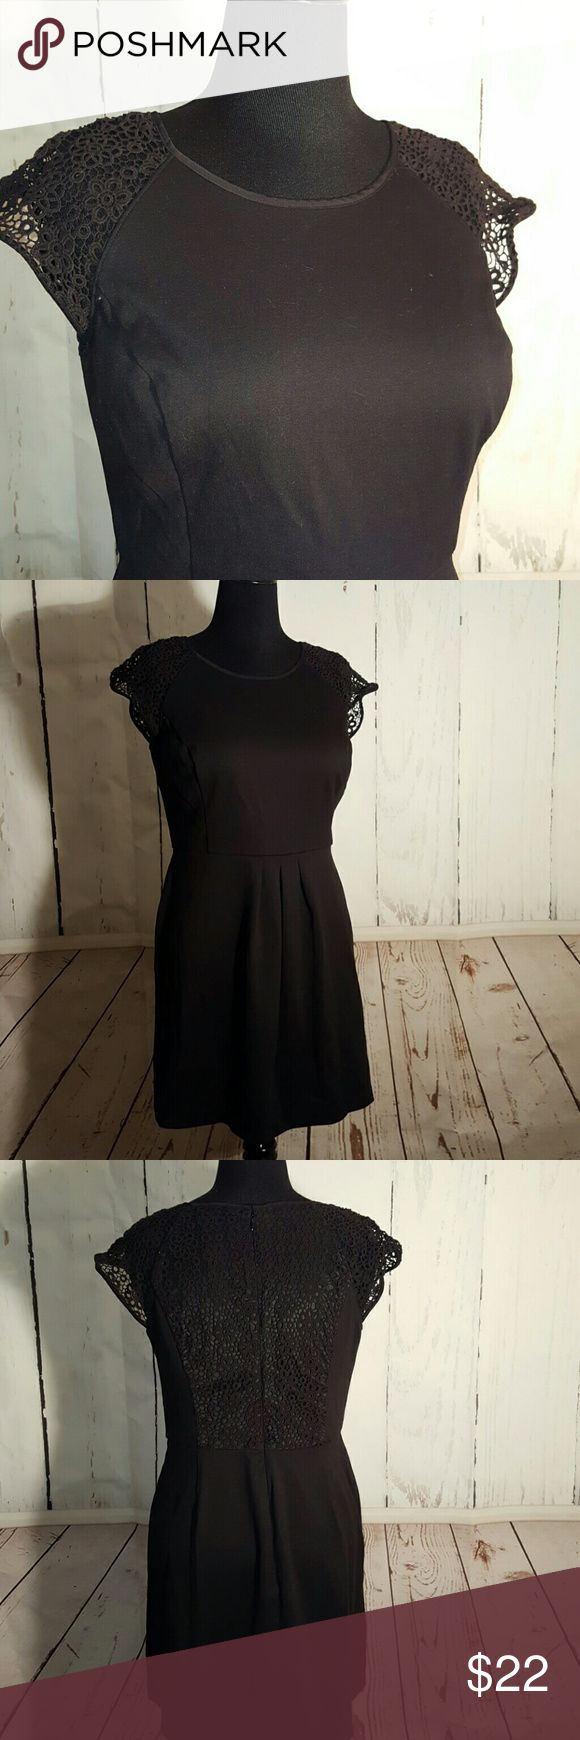 🔥FLASH SALE🔥 Black Crochet Cocktail Dress Adorable black dress by Lauren Conrad  in a size 16. Had crochet capped sleeves and back panel detail with a hidden zipper and flattering pleated waist. Lauren Conrad  Dresses